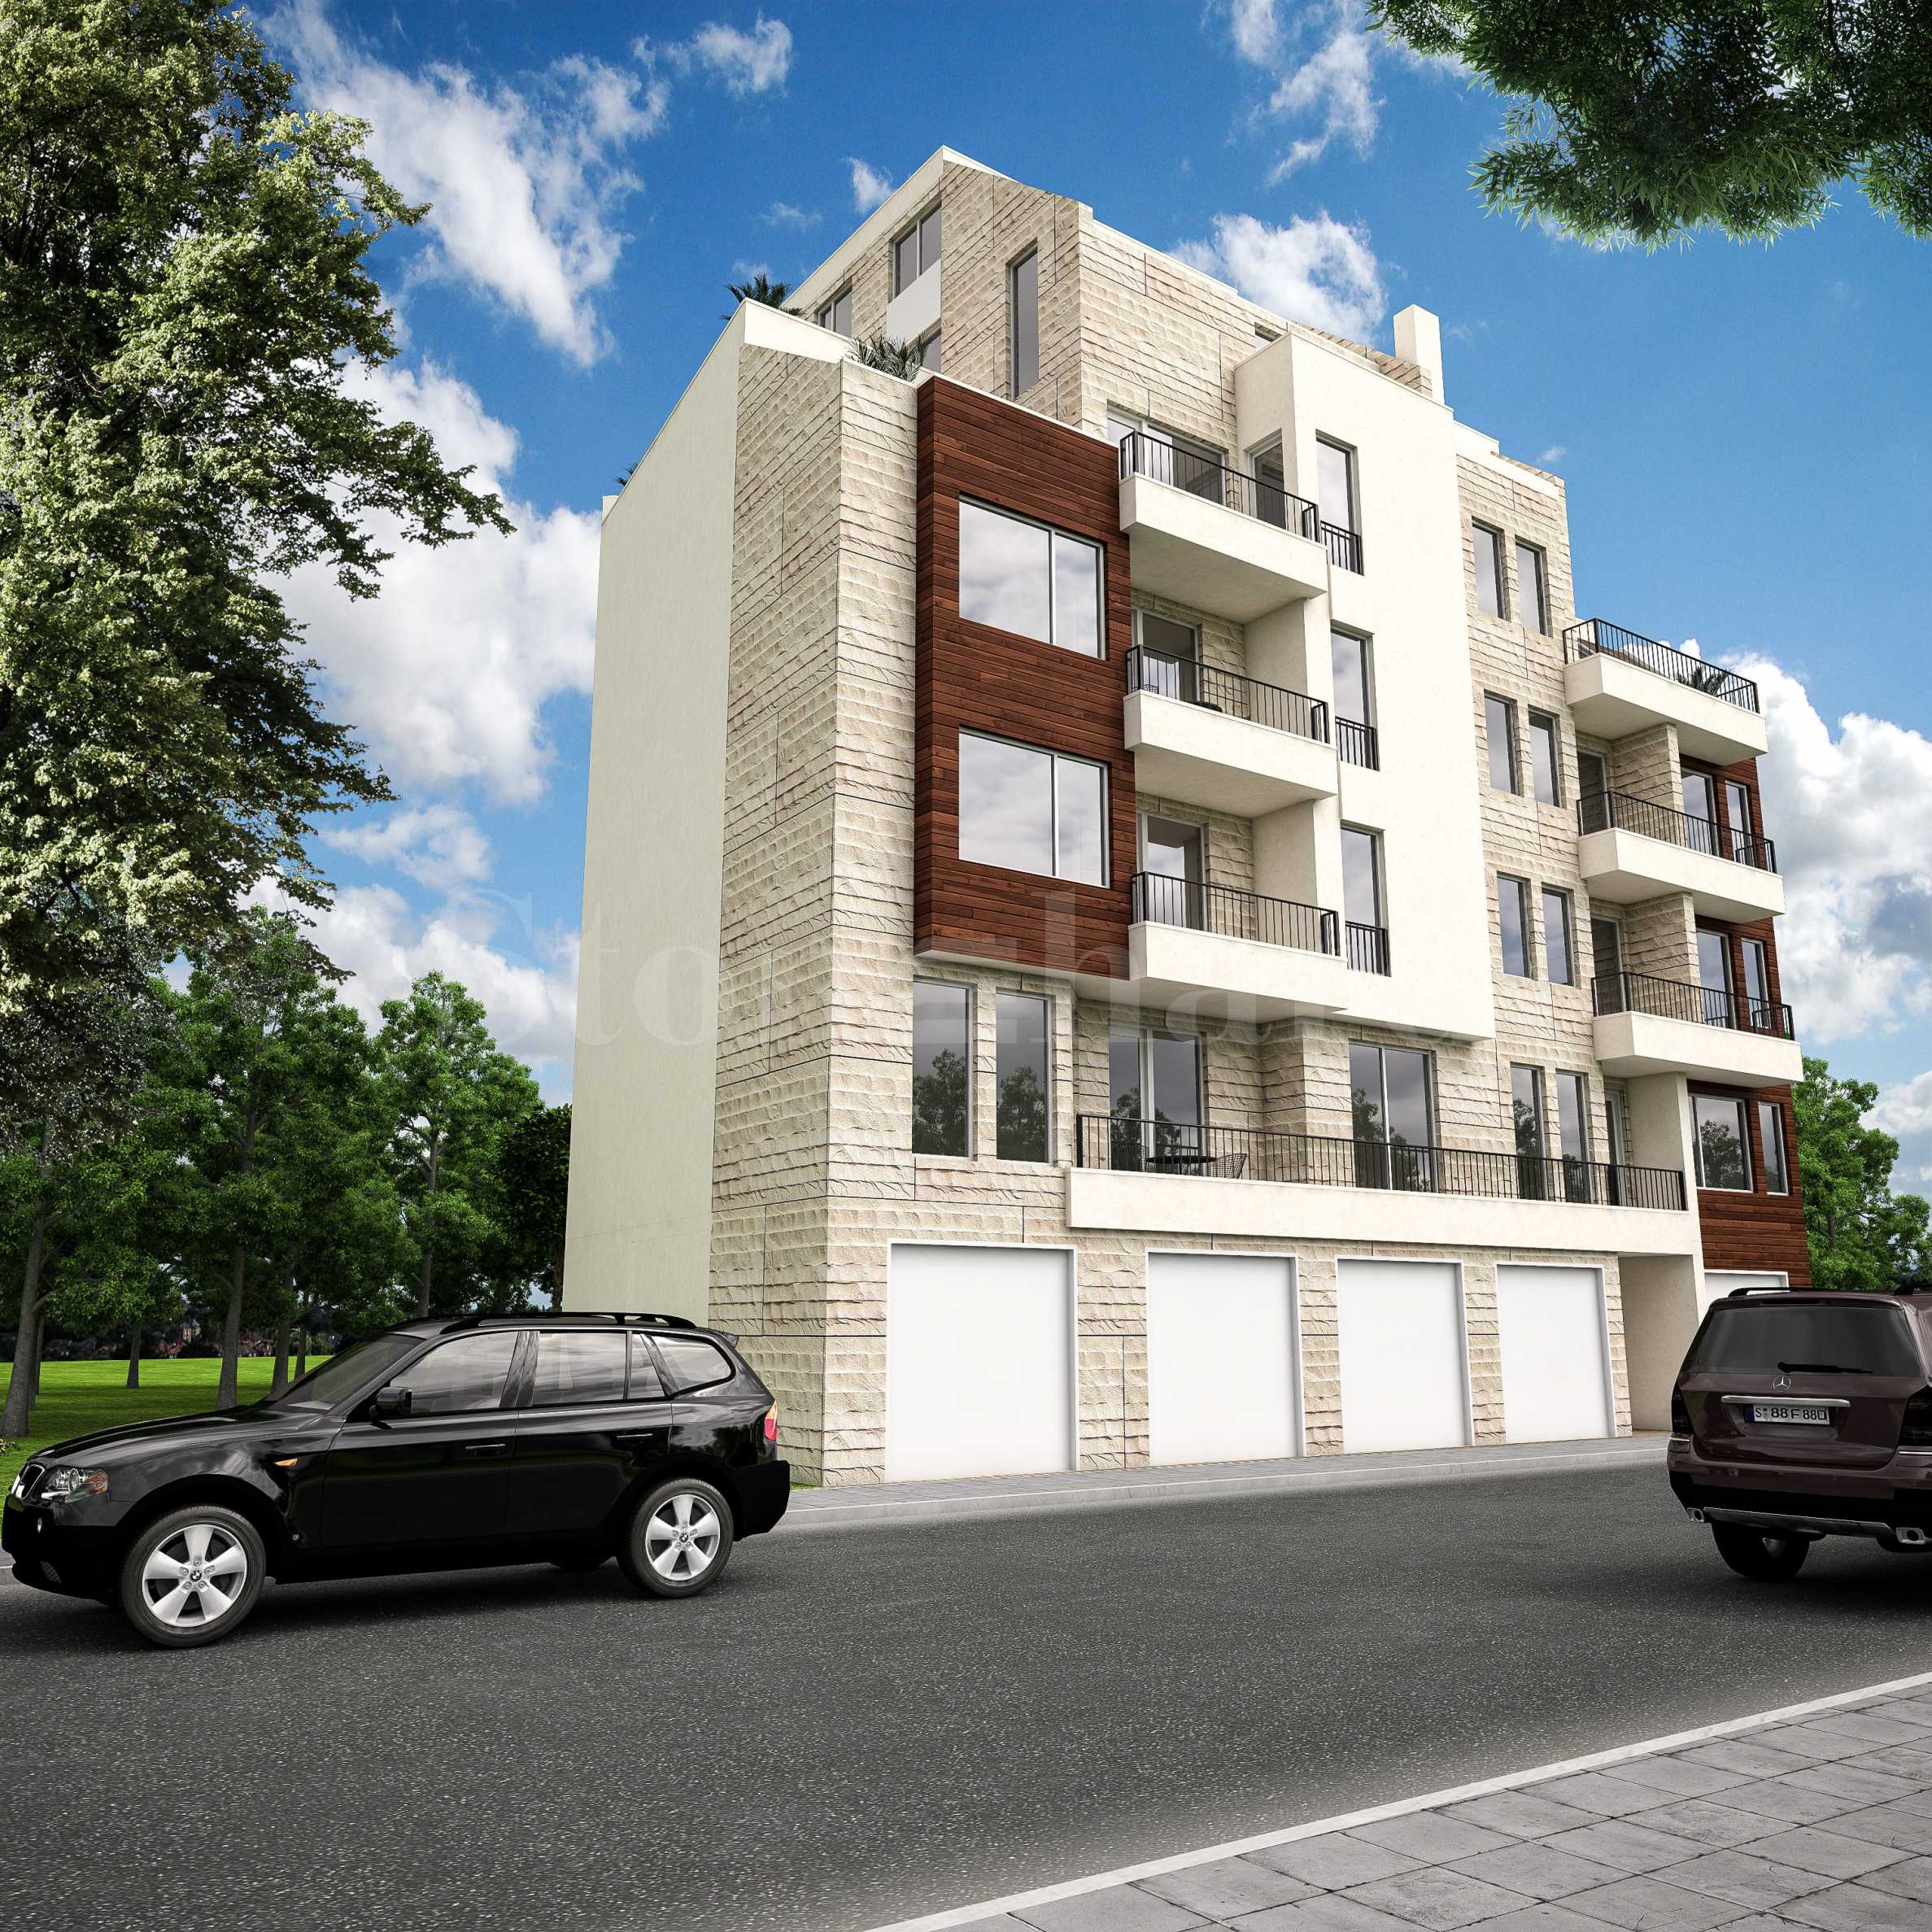 New elegant 5-storey building in the central area of Burgas1 - Stonehard